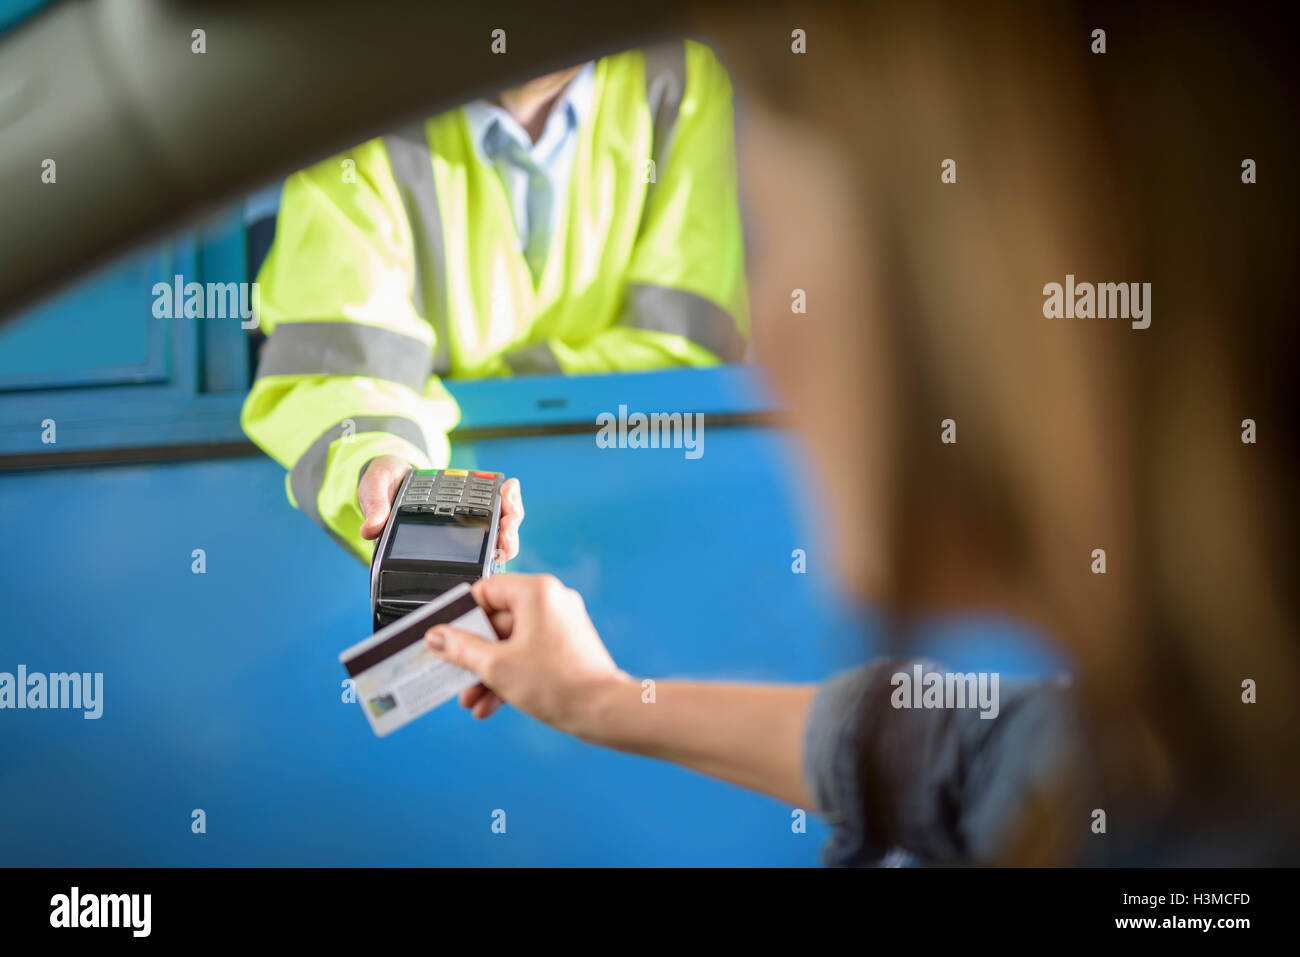 Driver in car paying toll booth using contactless card payment technology, close up - Stock Image